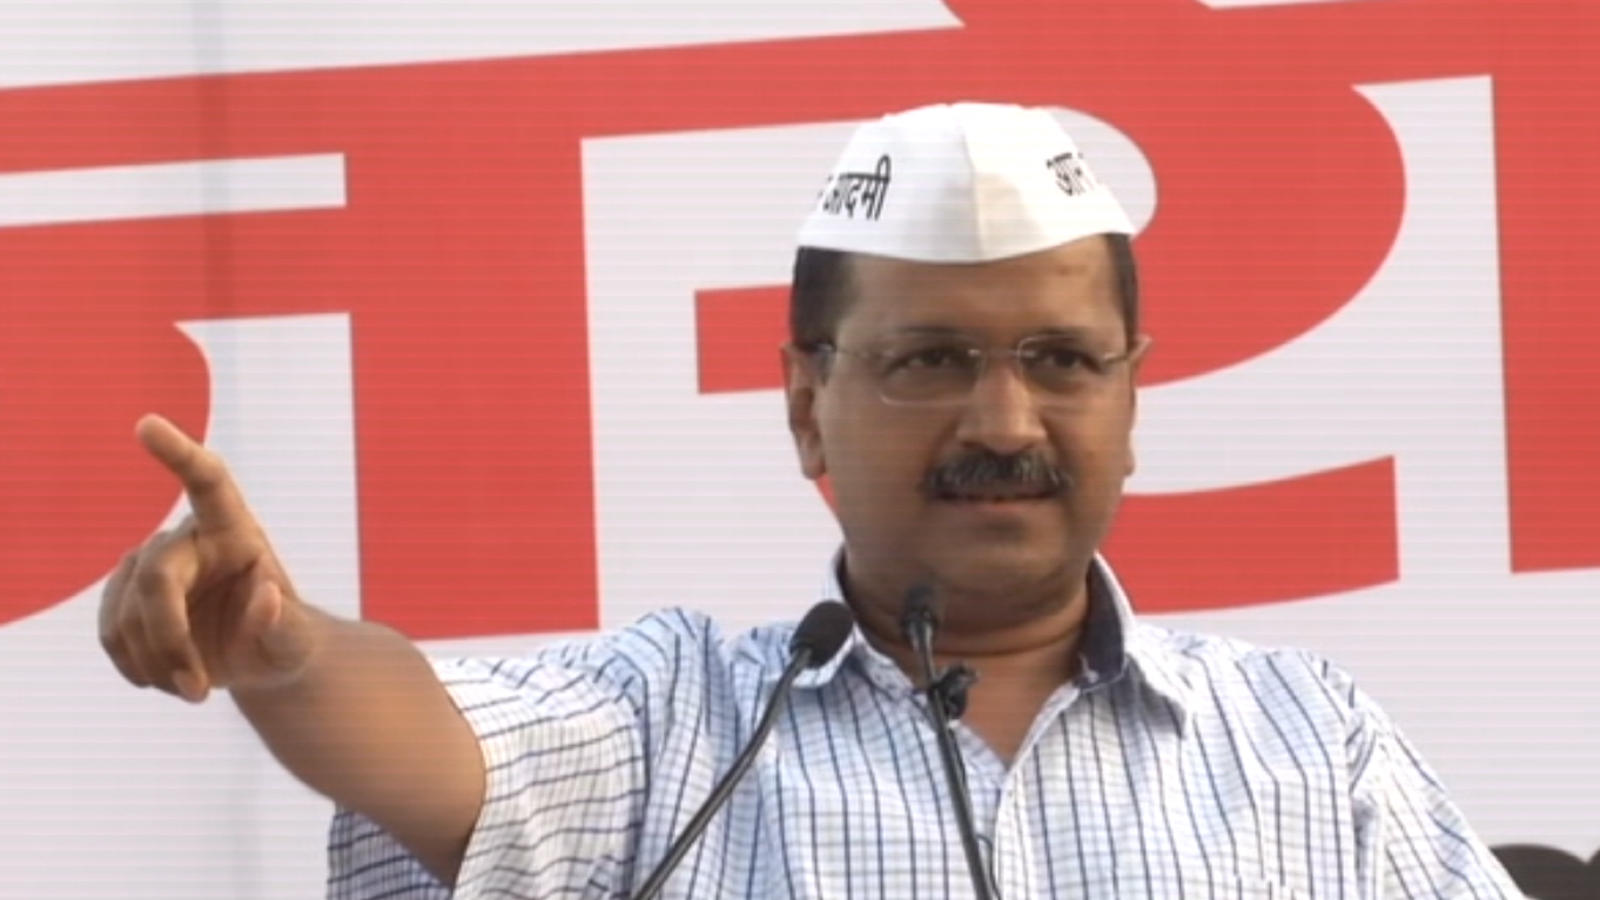 dont-get-disheartened-by-ls-defeat-concentrate-on-next-years-delhi-polls-delhi-cm-to-aap-workers